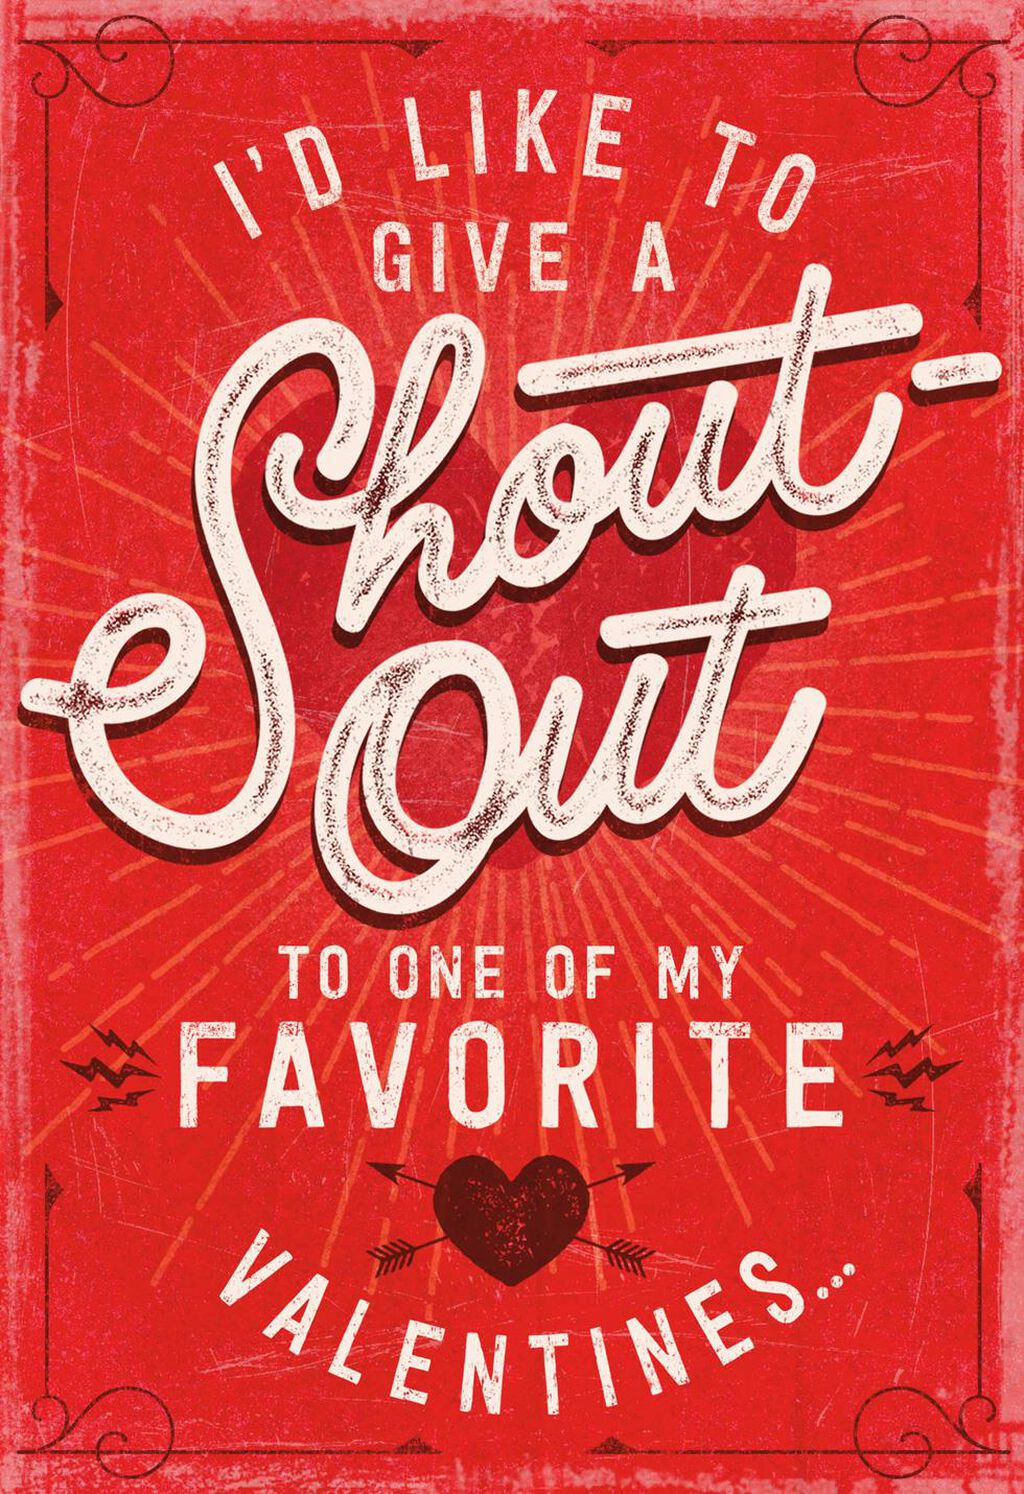 Shout out recordable valentines day card greeting cards hallmark m4hsunfo